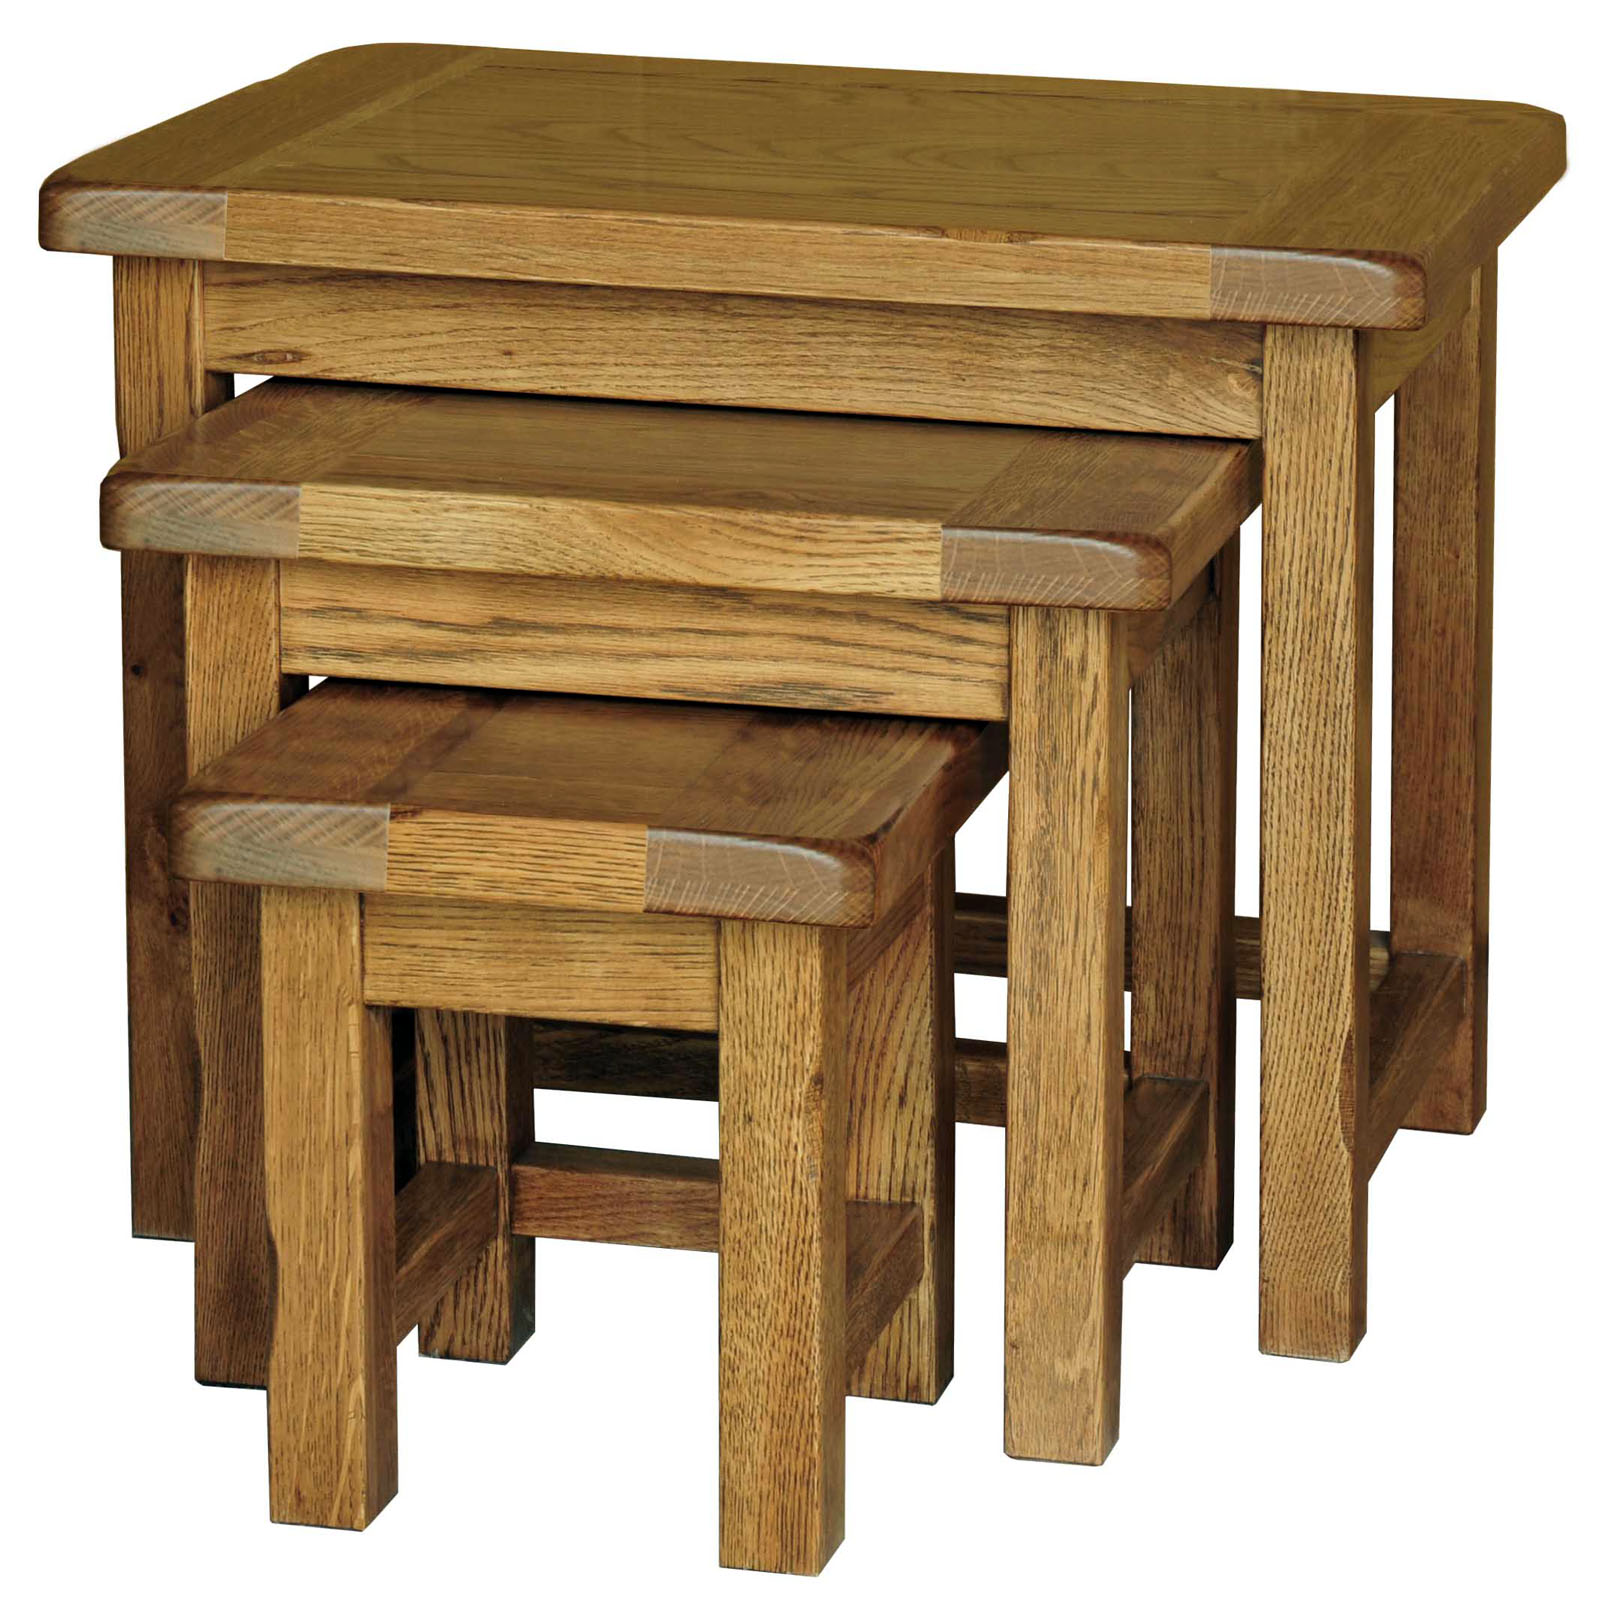 39 country oak 39 nest of tables three tiers included for Small nest of tables